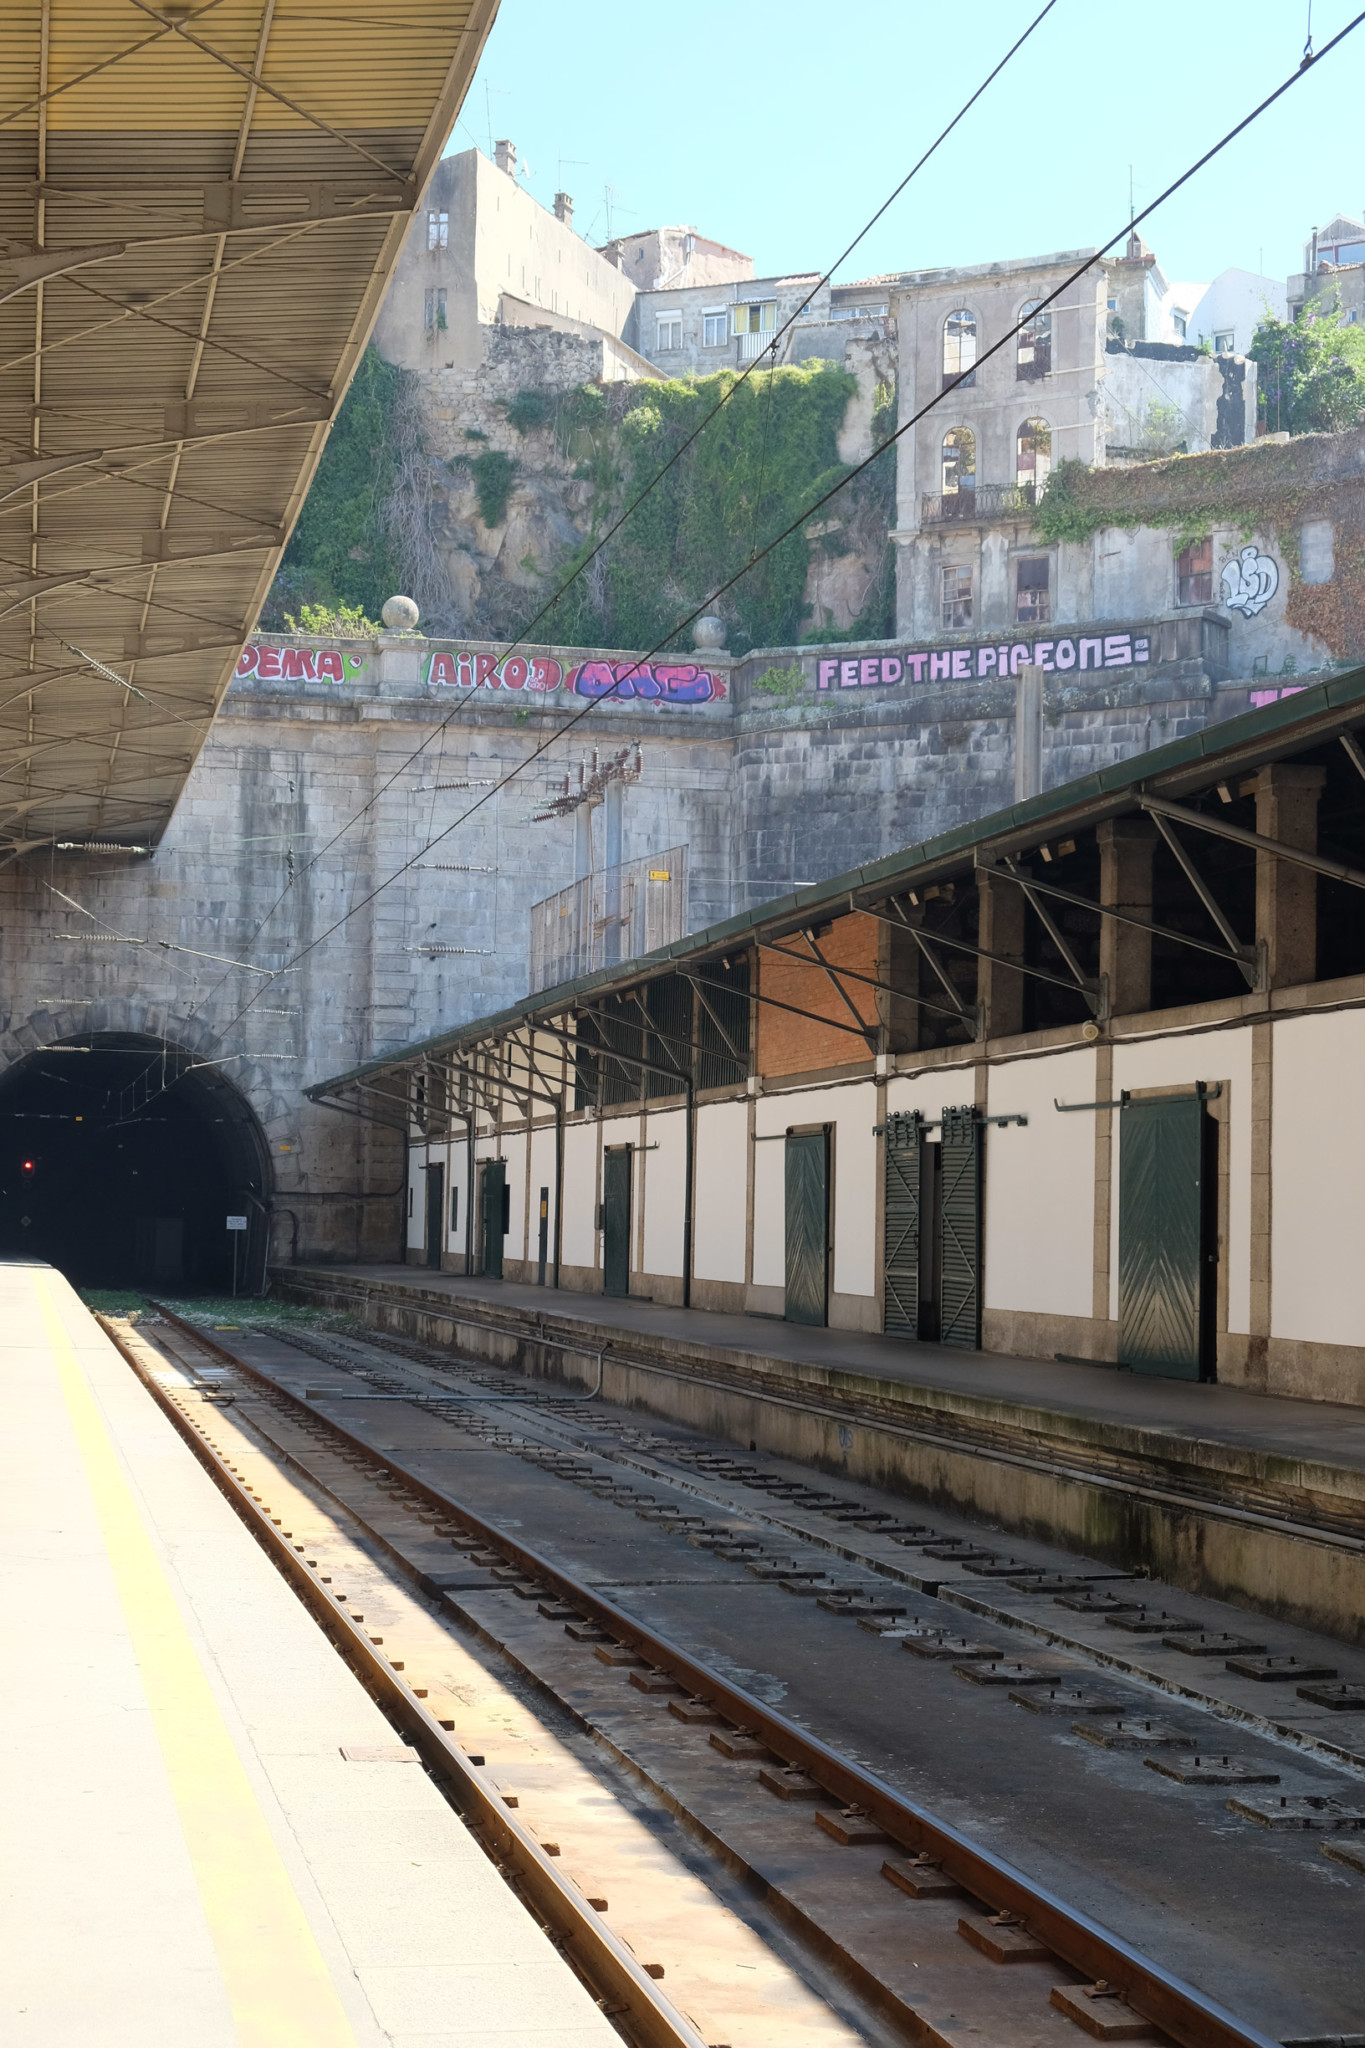 Arriving at Porto São Bento station